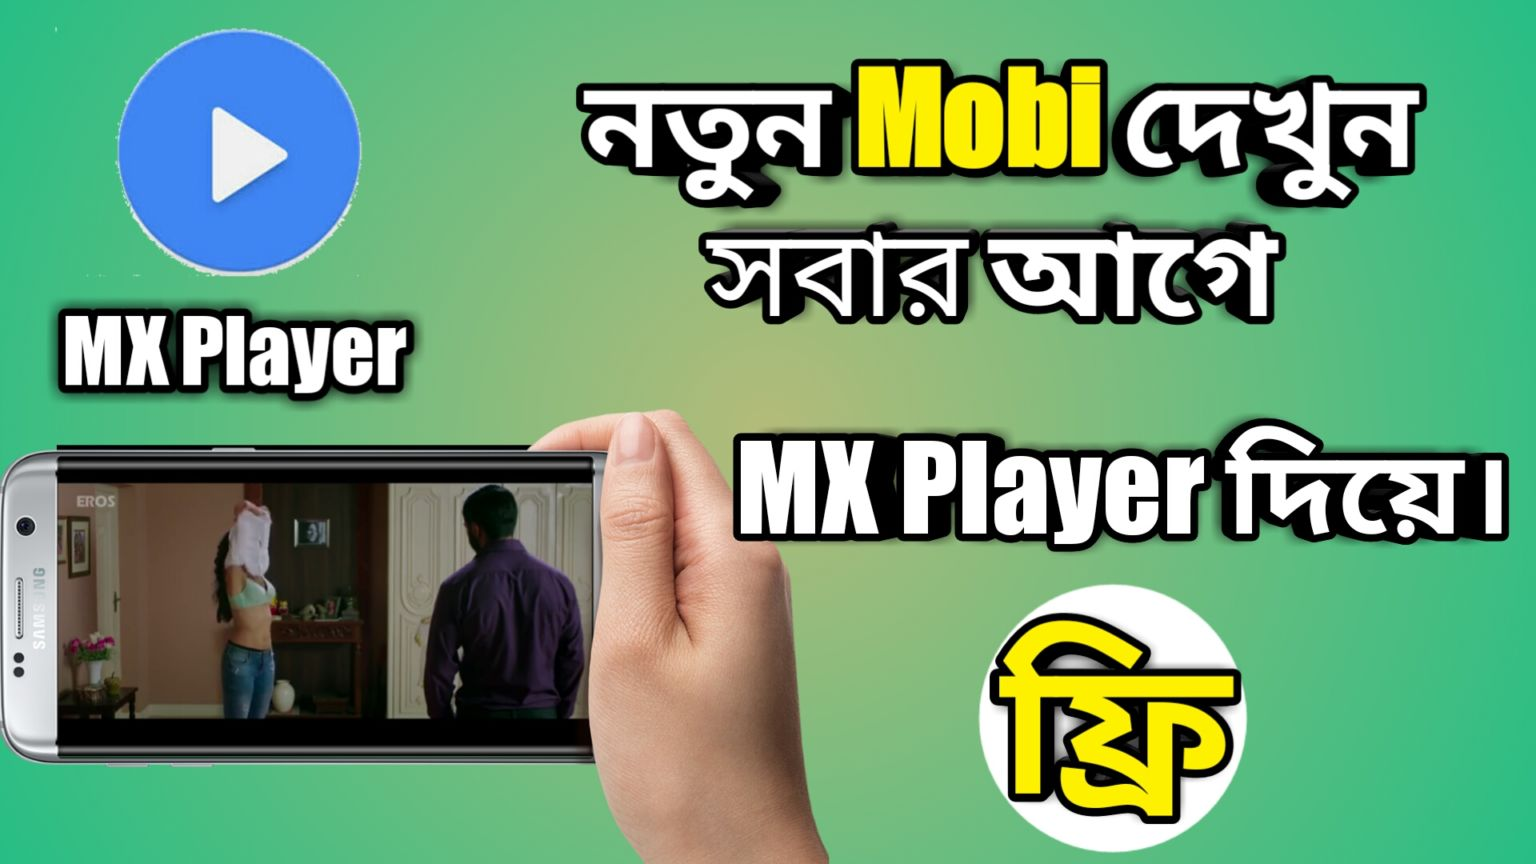 নতুন Movie দেখুন সবার আগে MX player দিয়ে। Hollywood,Bollywood,Hollywood Dubbed Movie